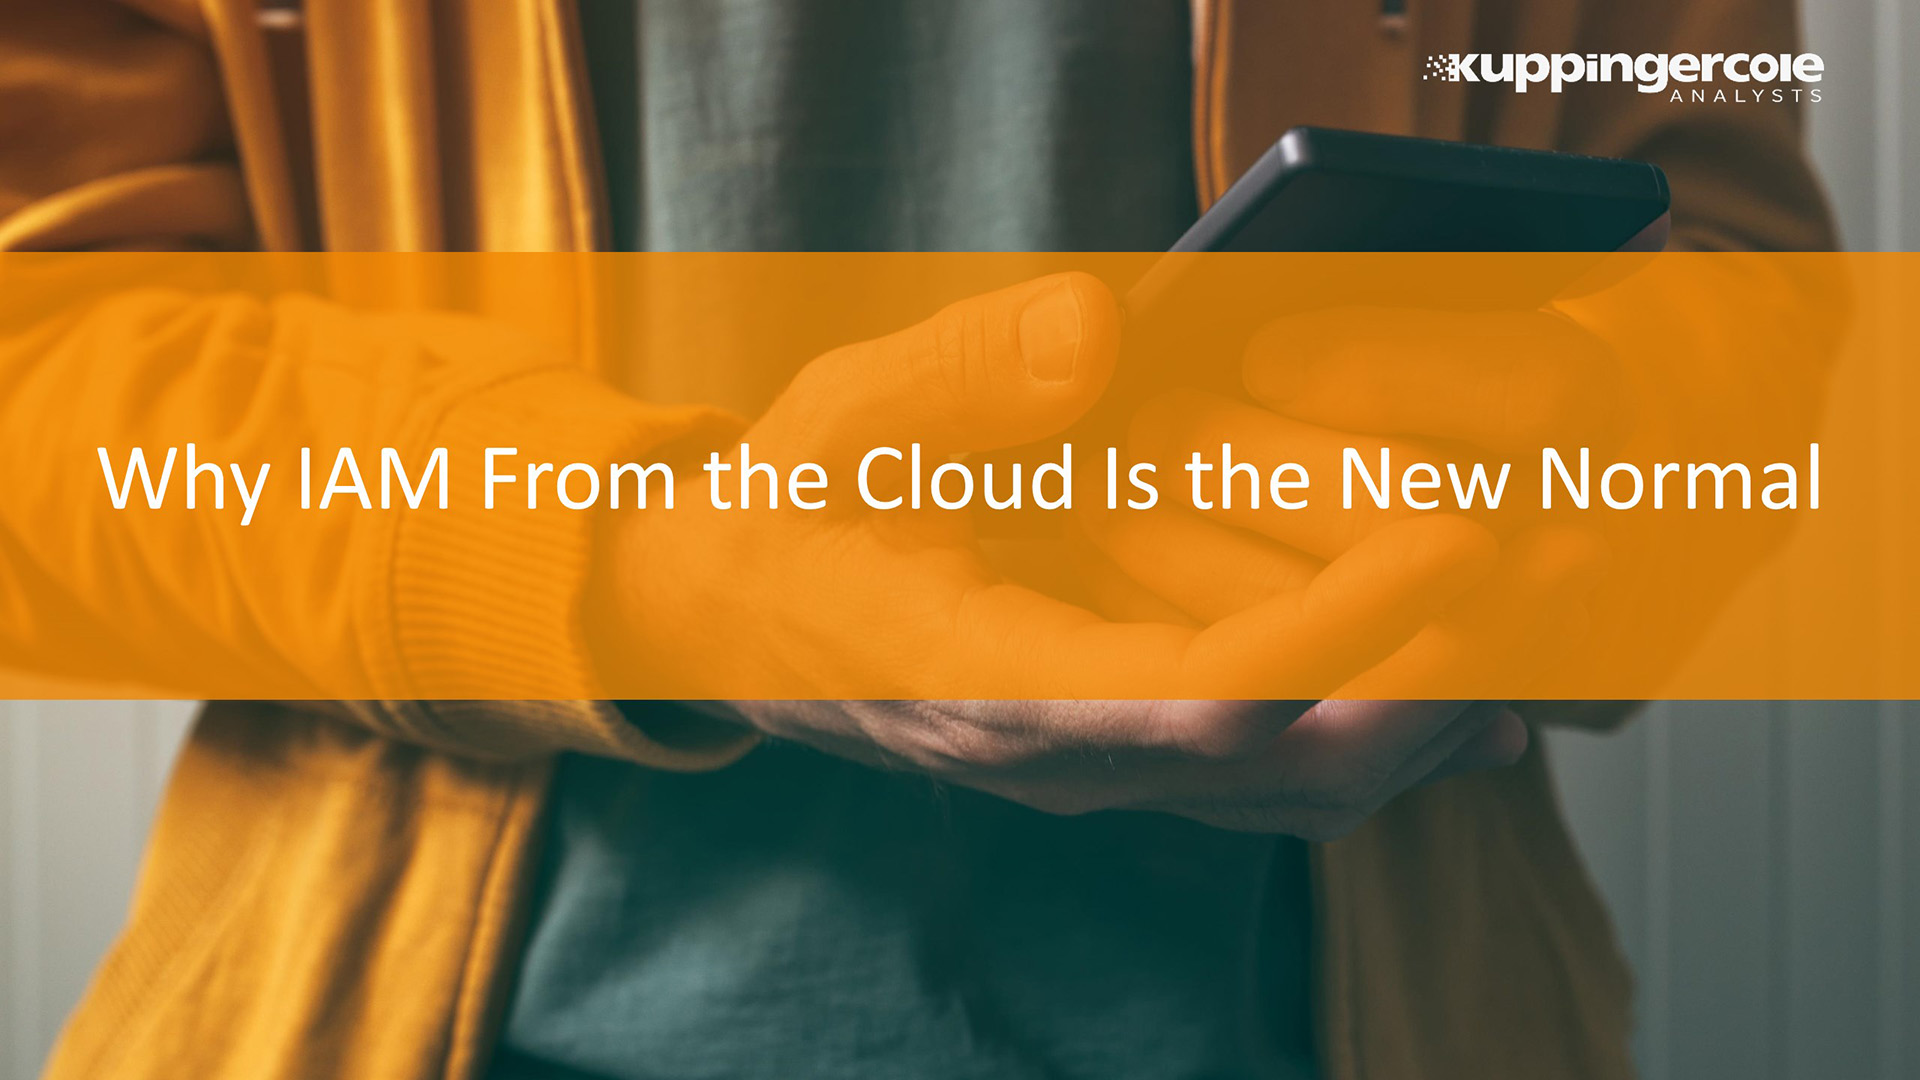 Why IAM From the Cloud is the New Normal